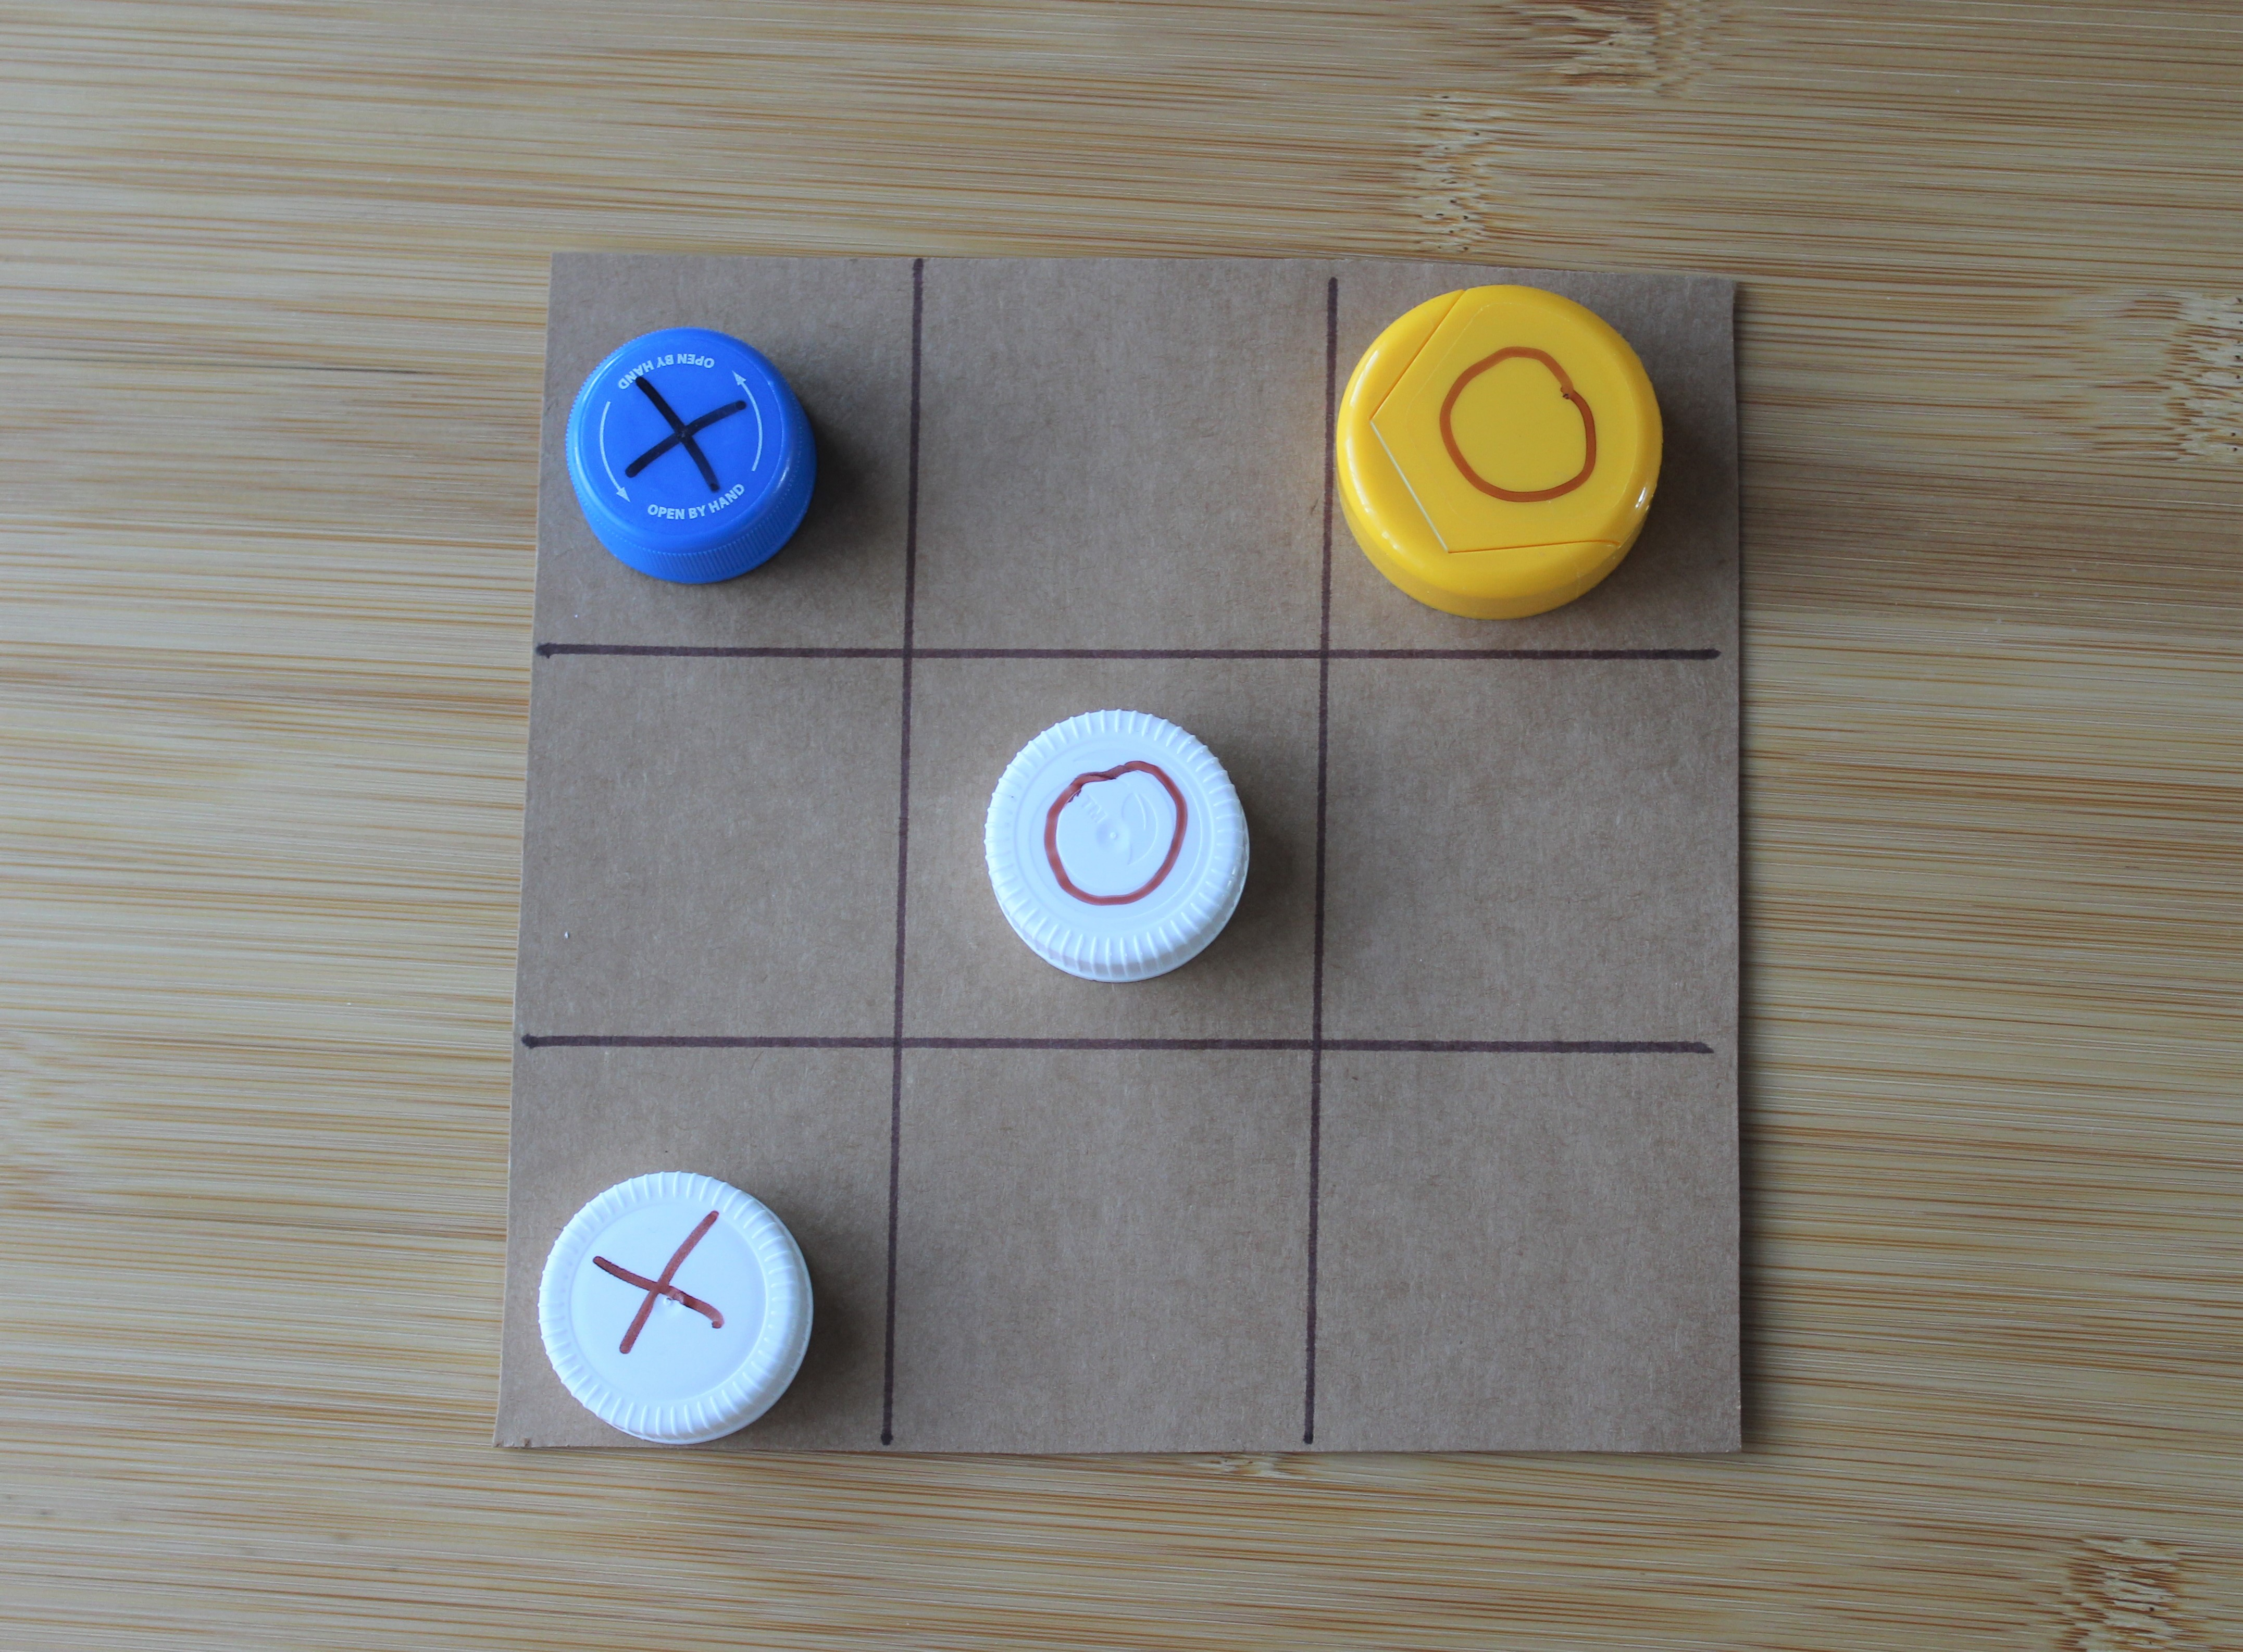 recycled-material-board-game-tic-tac-toe-noughts-and-crosses